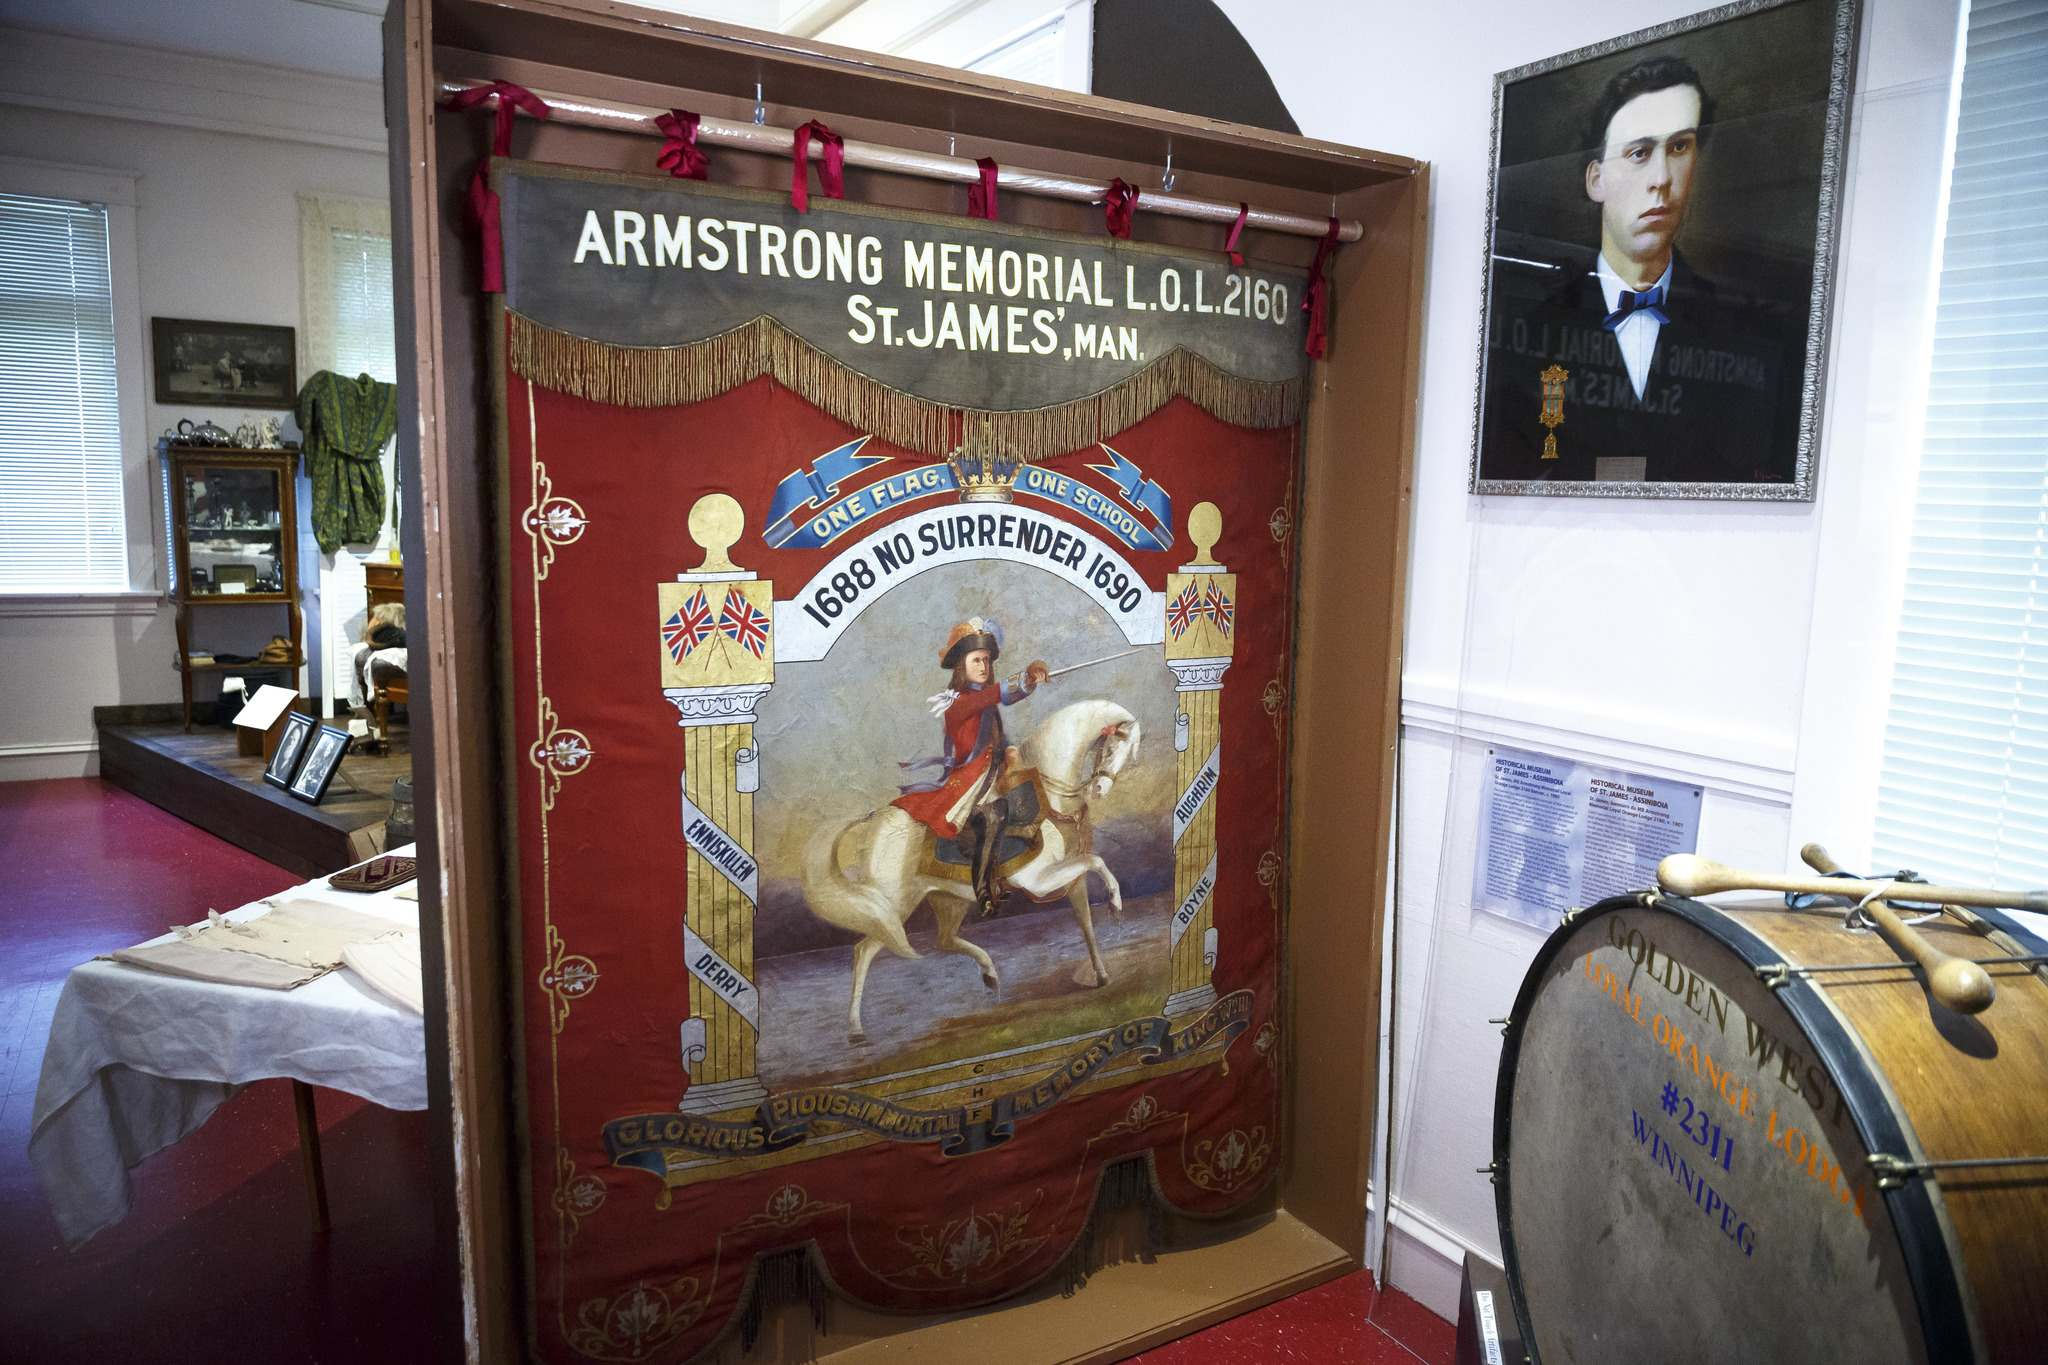 The St. James Armstrong Memorial Loyal Orange Lodge 2160 banner, circa 1901. The banner is a rare example of the material history of the Orange Lodge in Manitoba. (Mike Deal / Winnipeg Free Press)</p>